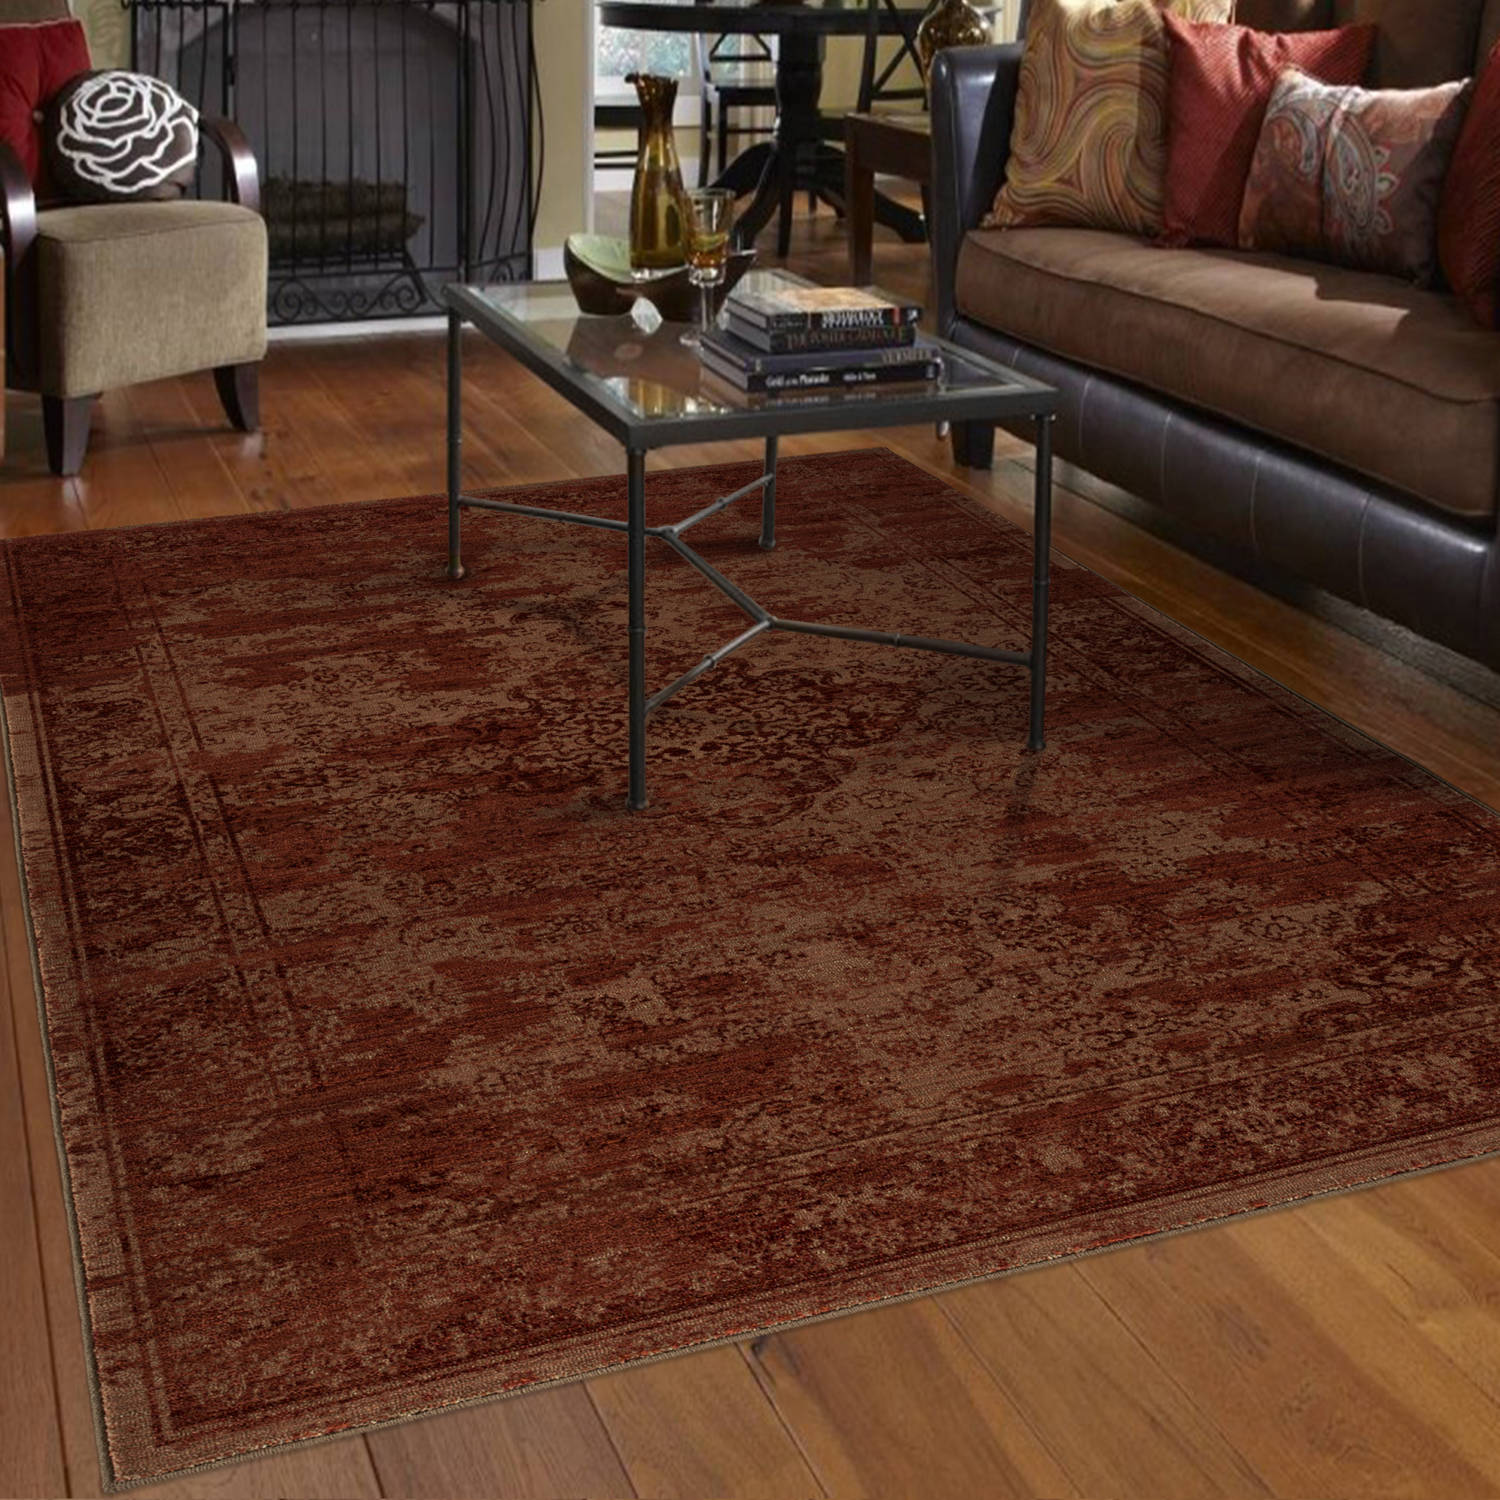 Orian Rugs Faded Damask Traditional Red Area Rug by Orian Rugs Inc